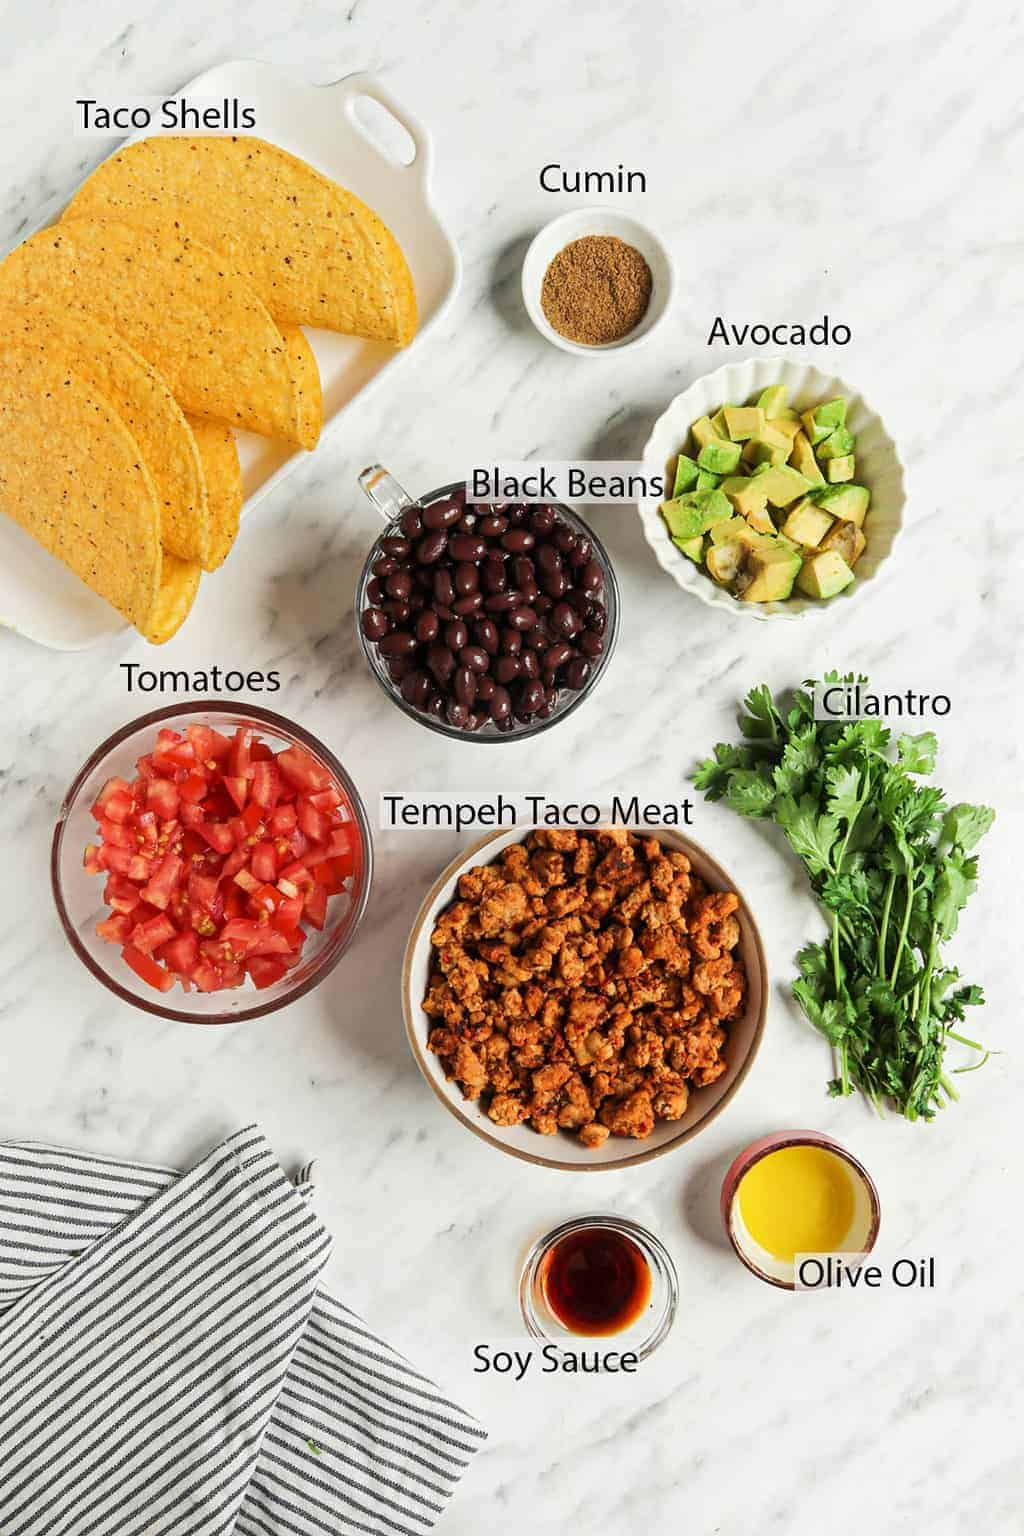 ingredients for homemade tacos including tempeh, cilantro, oil, soy sauce, tomatoes, avocado, black beans, cumin, and taco shells